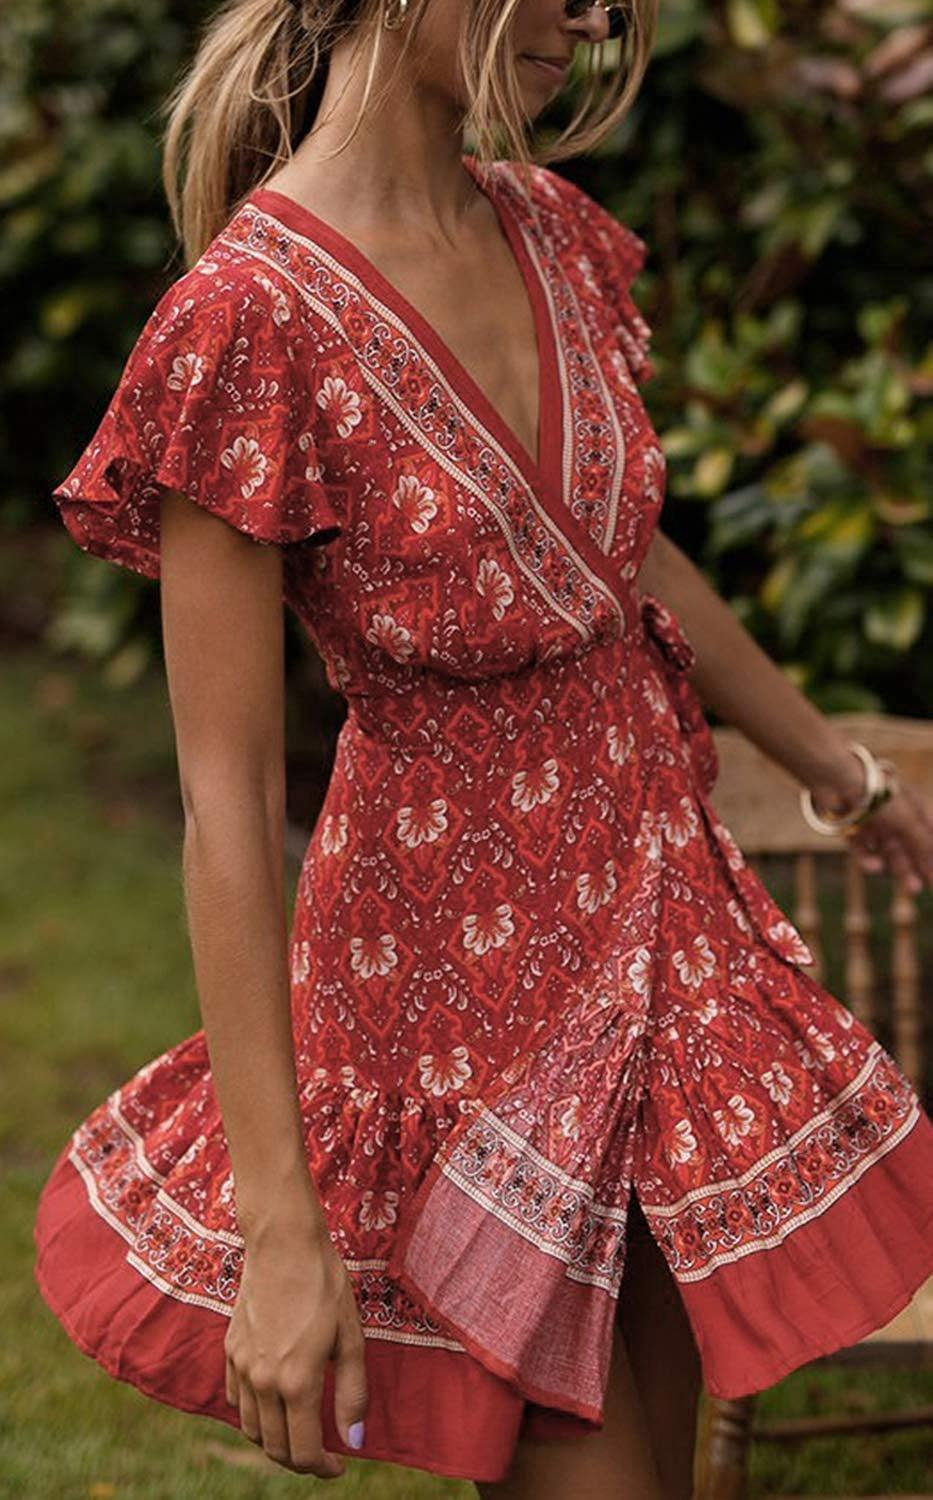 <p>This <span>Zesica Summer Wrap V-Neck Bohemian Floral Print Dress</span> ($15 - $37) is Amazon's top seller on the whole site.</p>